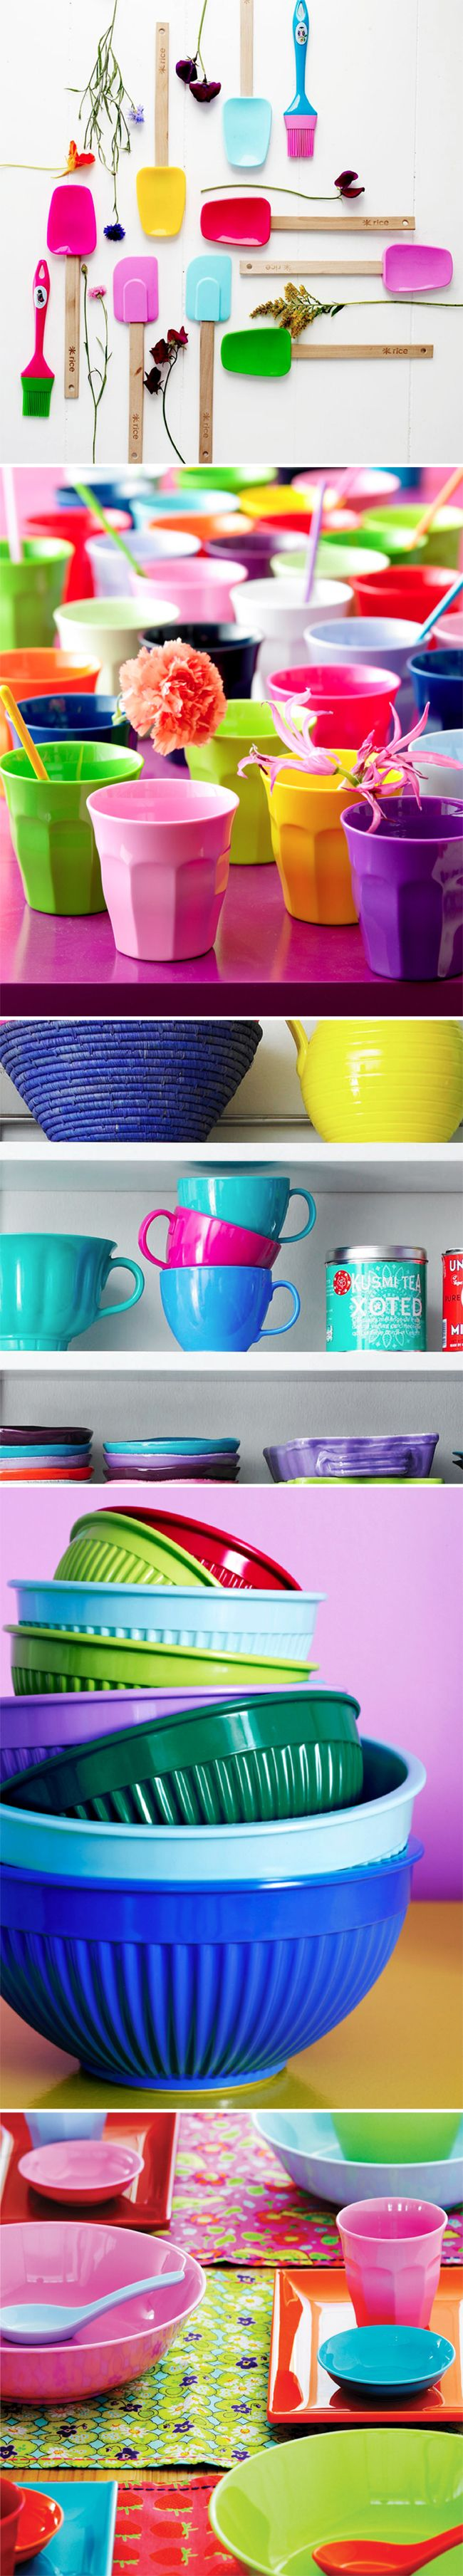 I love the colourful products/styling of rice dk